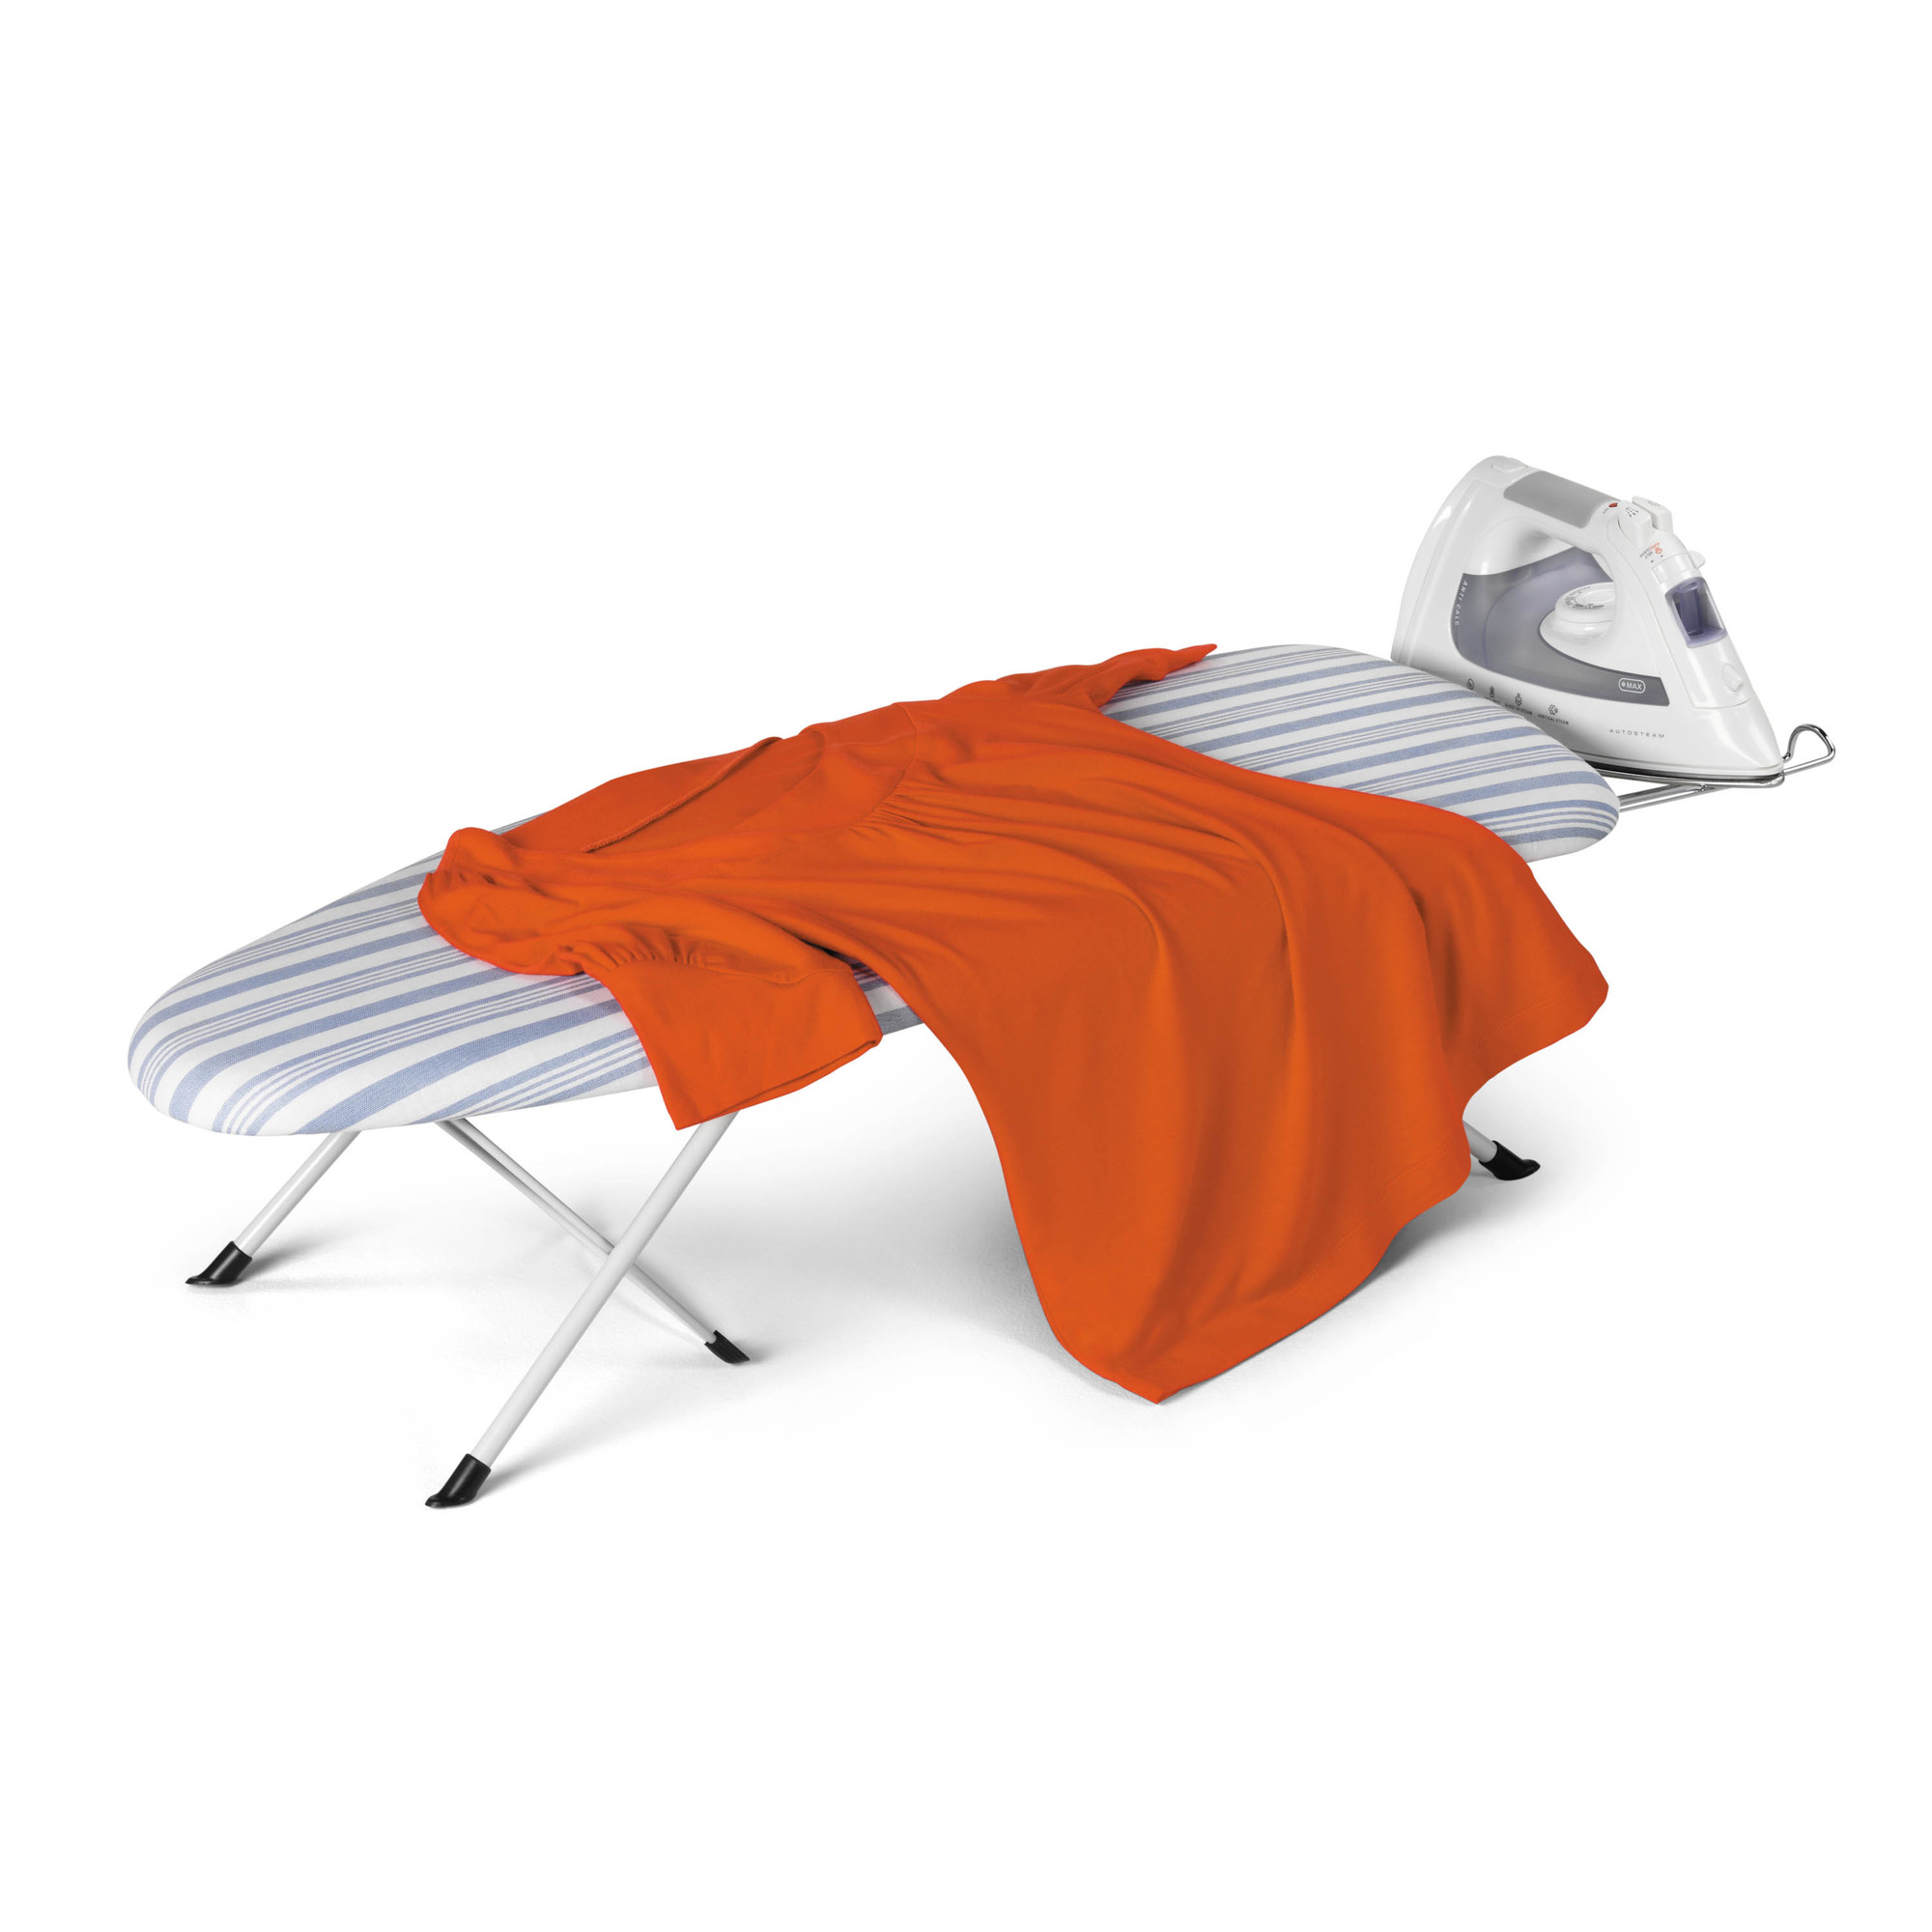 Honey Can Do Folding Tabletop/Counter Top Ironing Board, BRD 01292, Stripes    Walmart.com